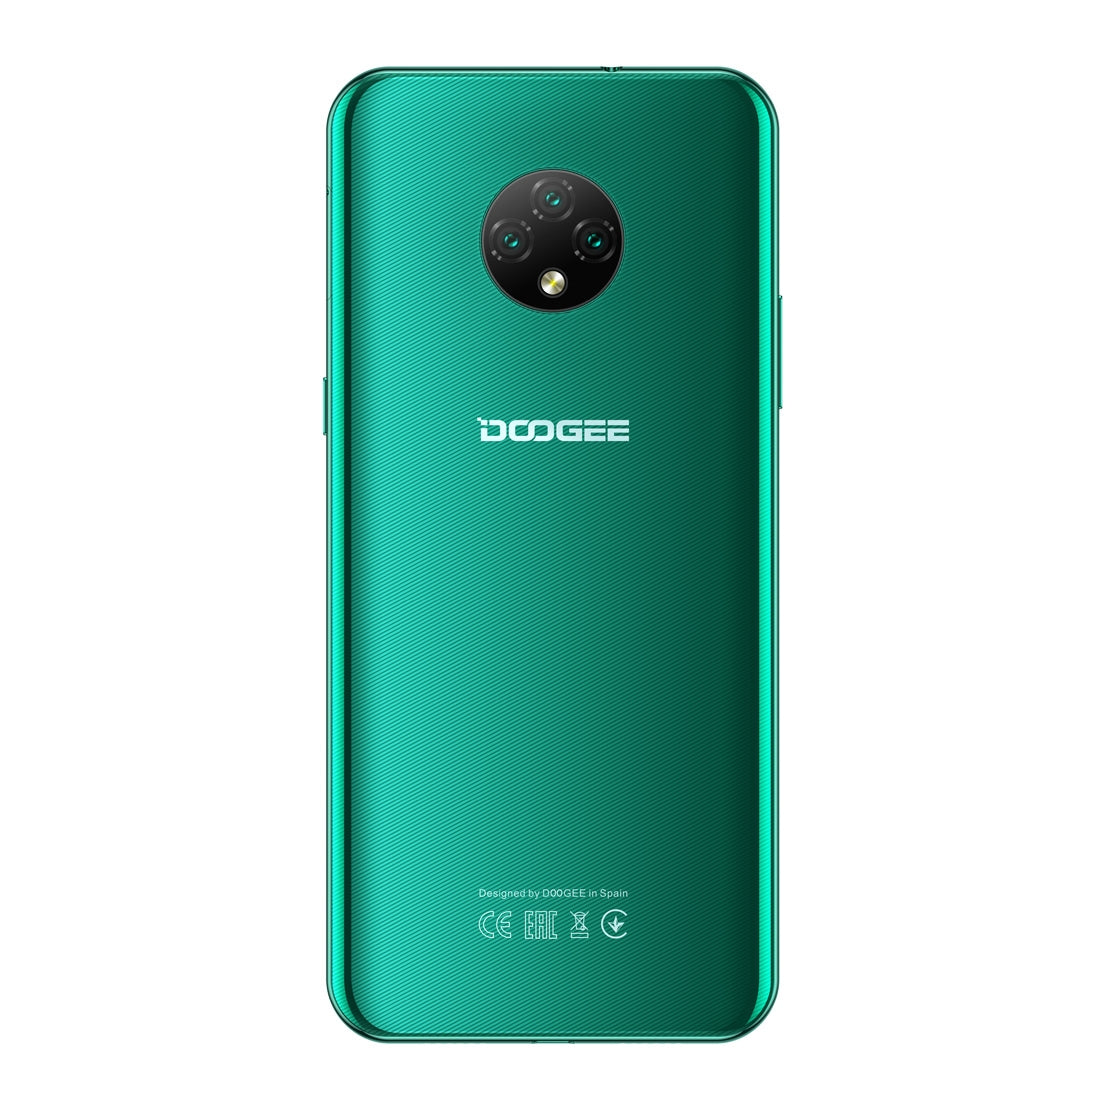 DOOGEE X95, 2GB+16GB Triple Back Cameras, Face ID, 6.52 inch Water-drop Screen Android 10 MTK6737V/WA Quad Core up to 1.3GHz, Network: 4G